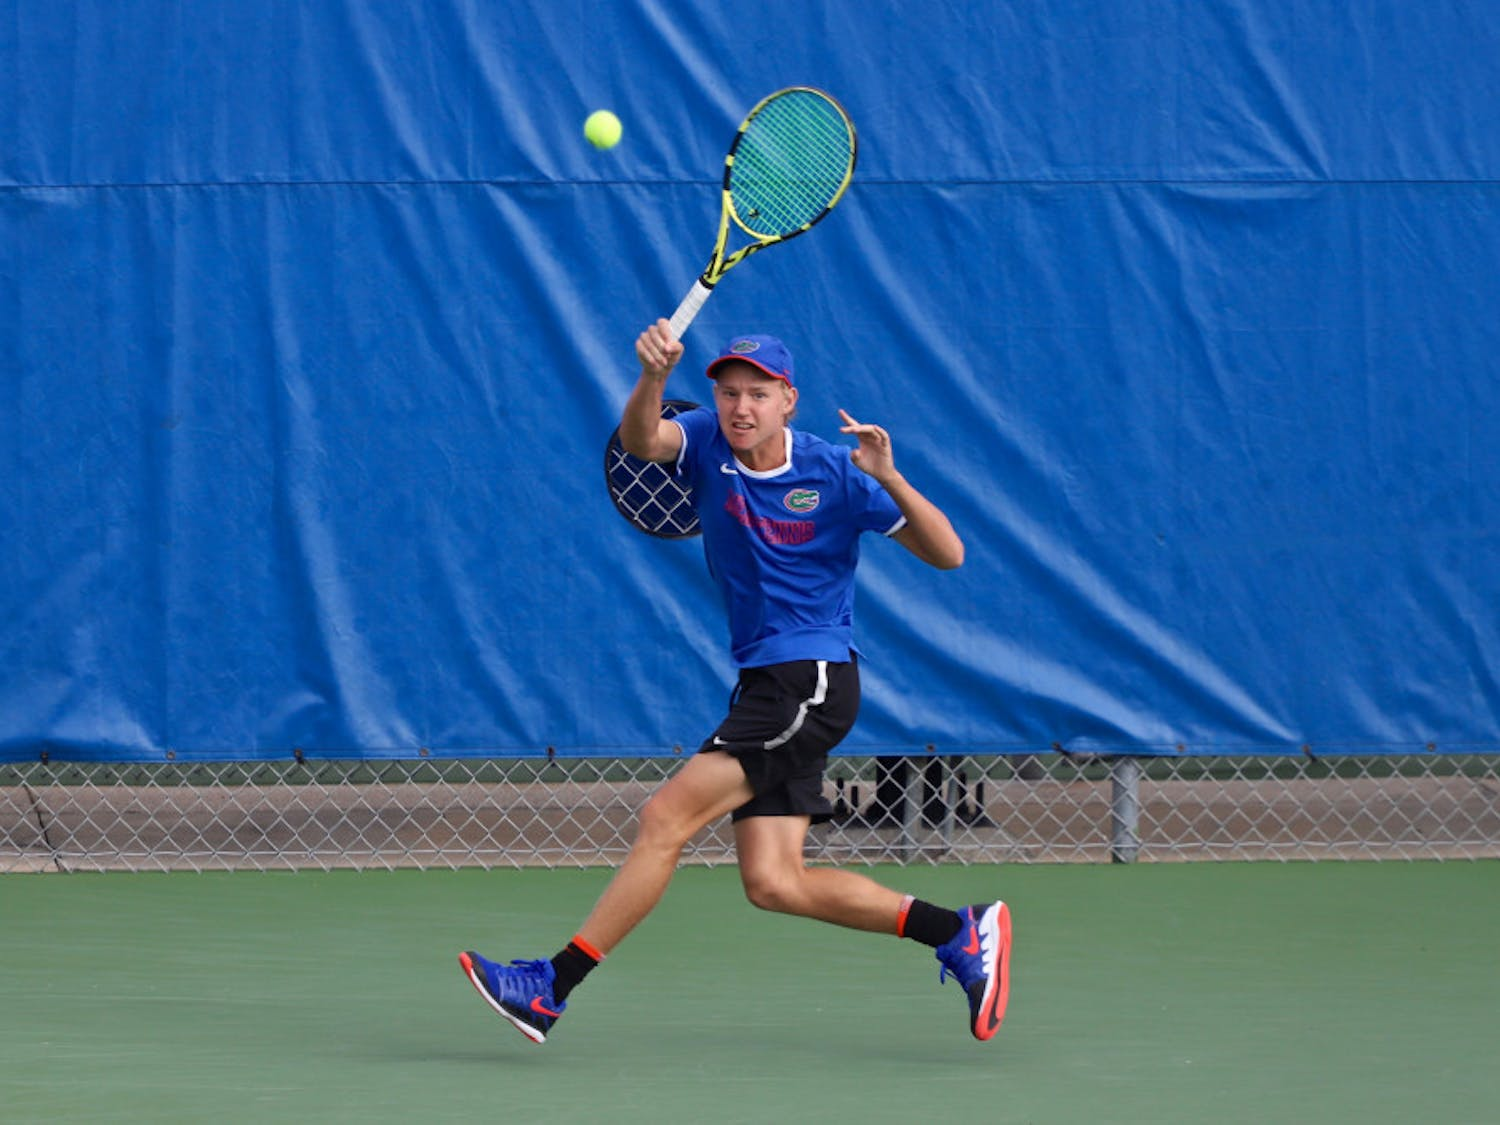 Lukas Greif swings at a tennis ball on the fourth day of the ITA Tournament in Gainesville last season. He and Will Grant teamed up for a doubles win in South Carolina Friday.